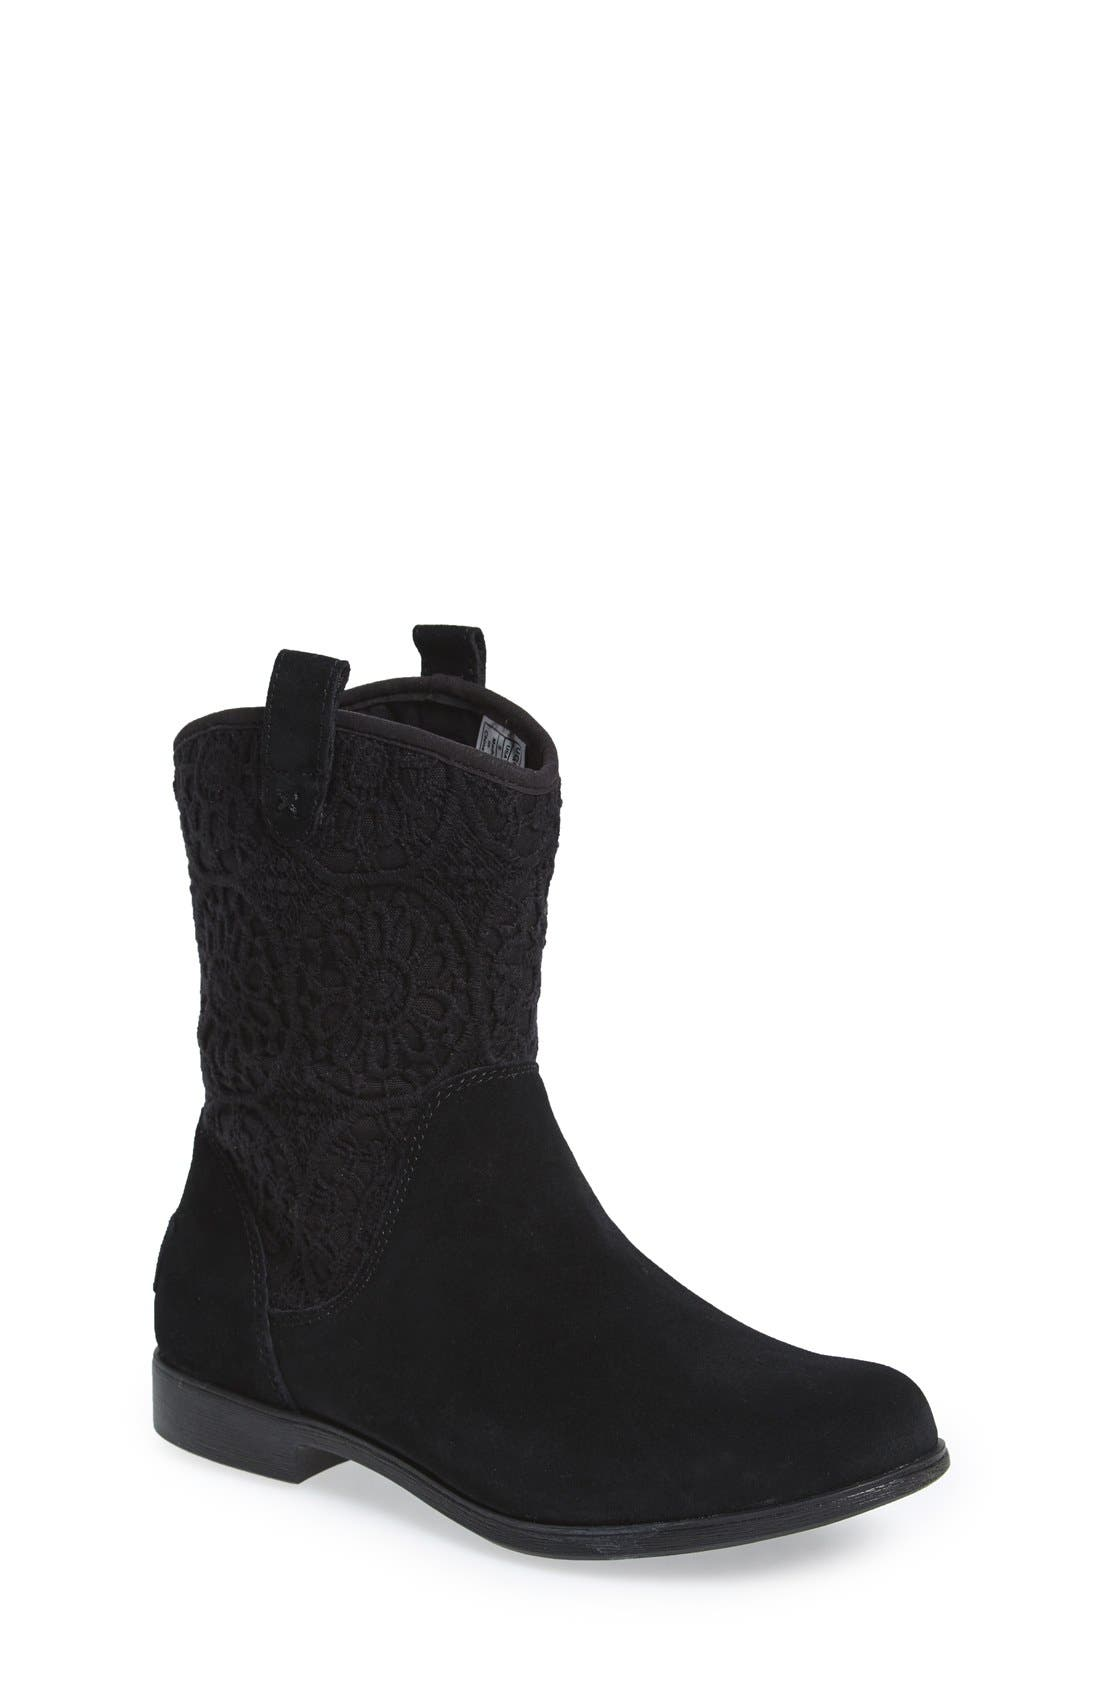 Alternate Image 1 Selected - UGG® 'Dahlia' Lace Trimmed Boot (Little Kid & Big Kid)